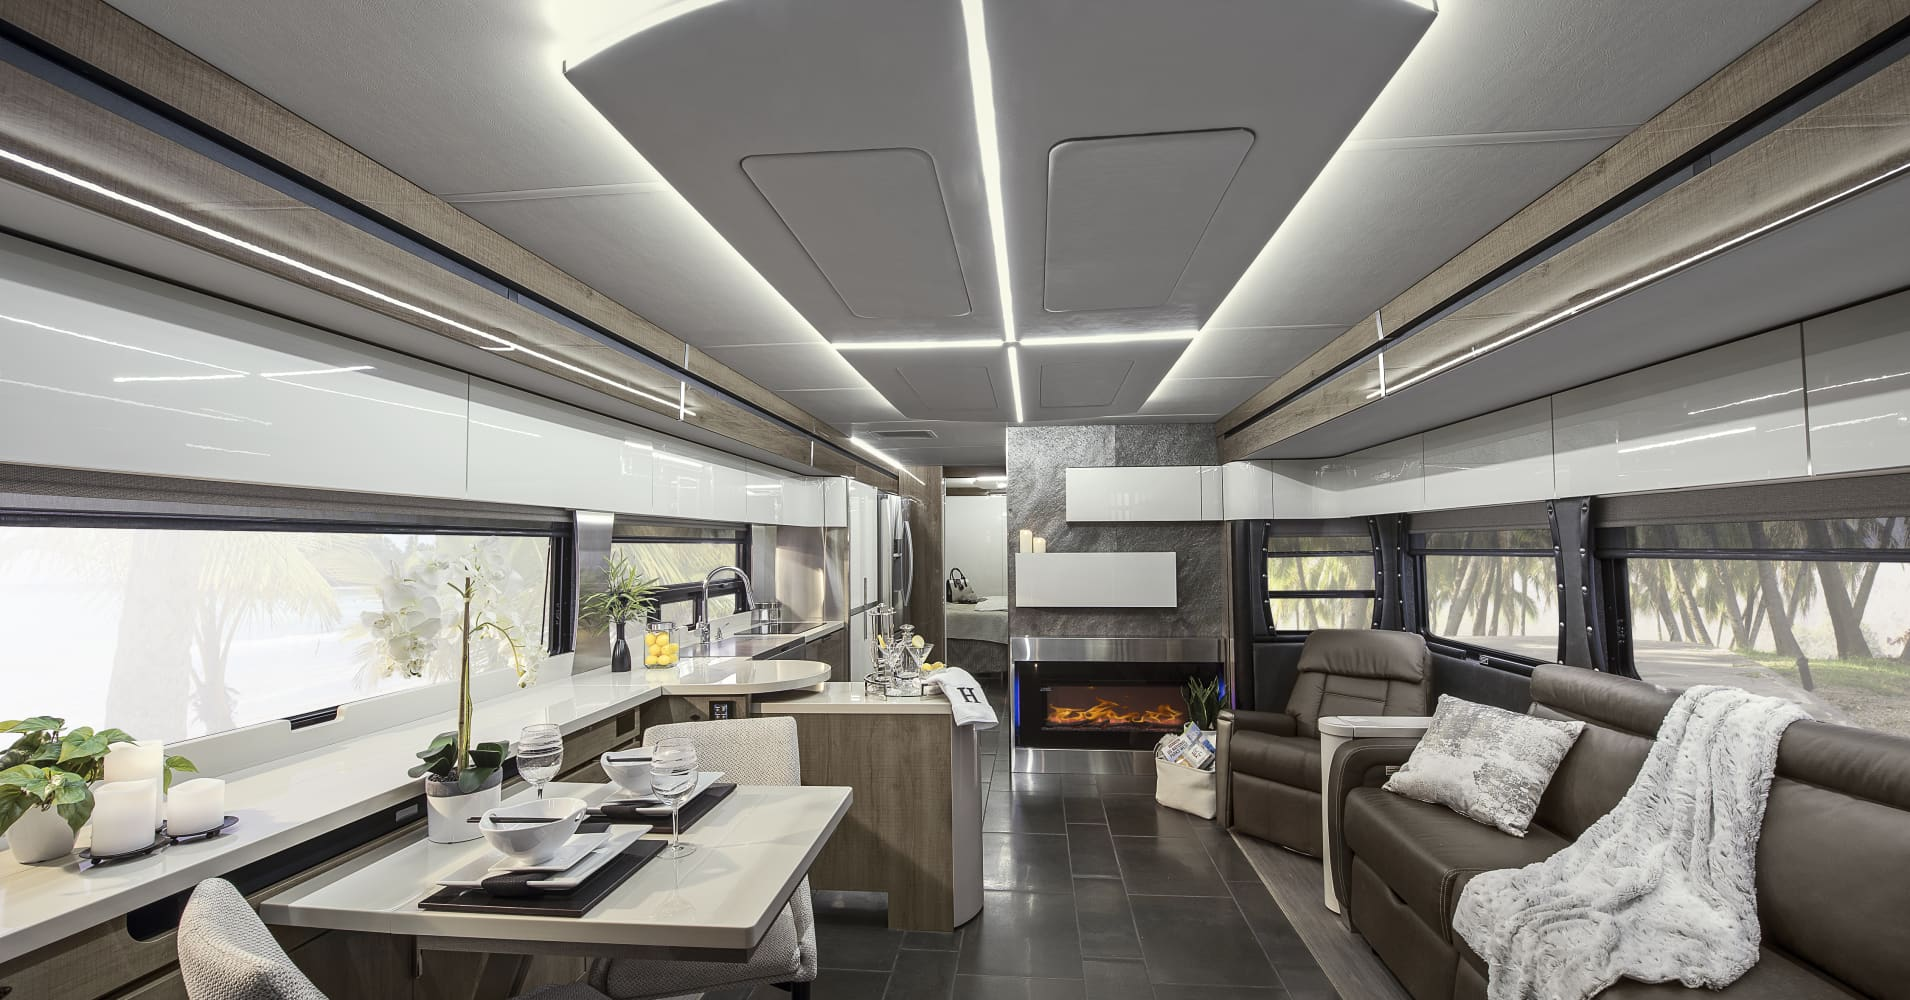 7 new RV models are taking the classic recreational vehicle into the future